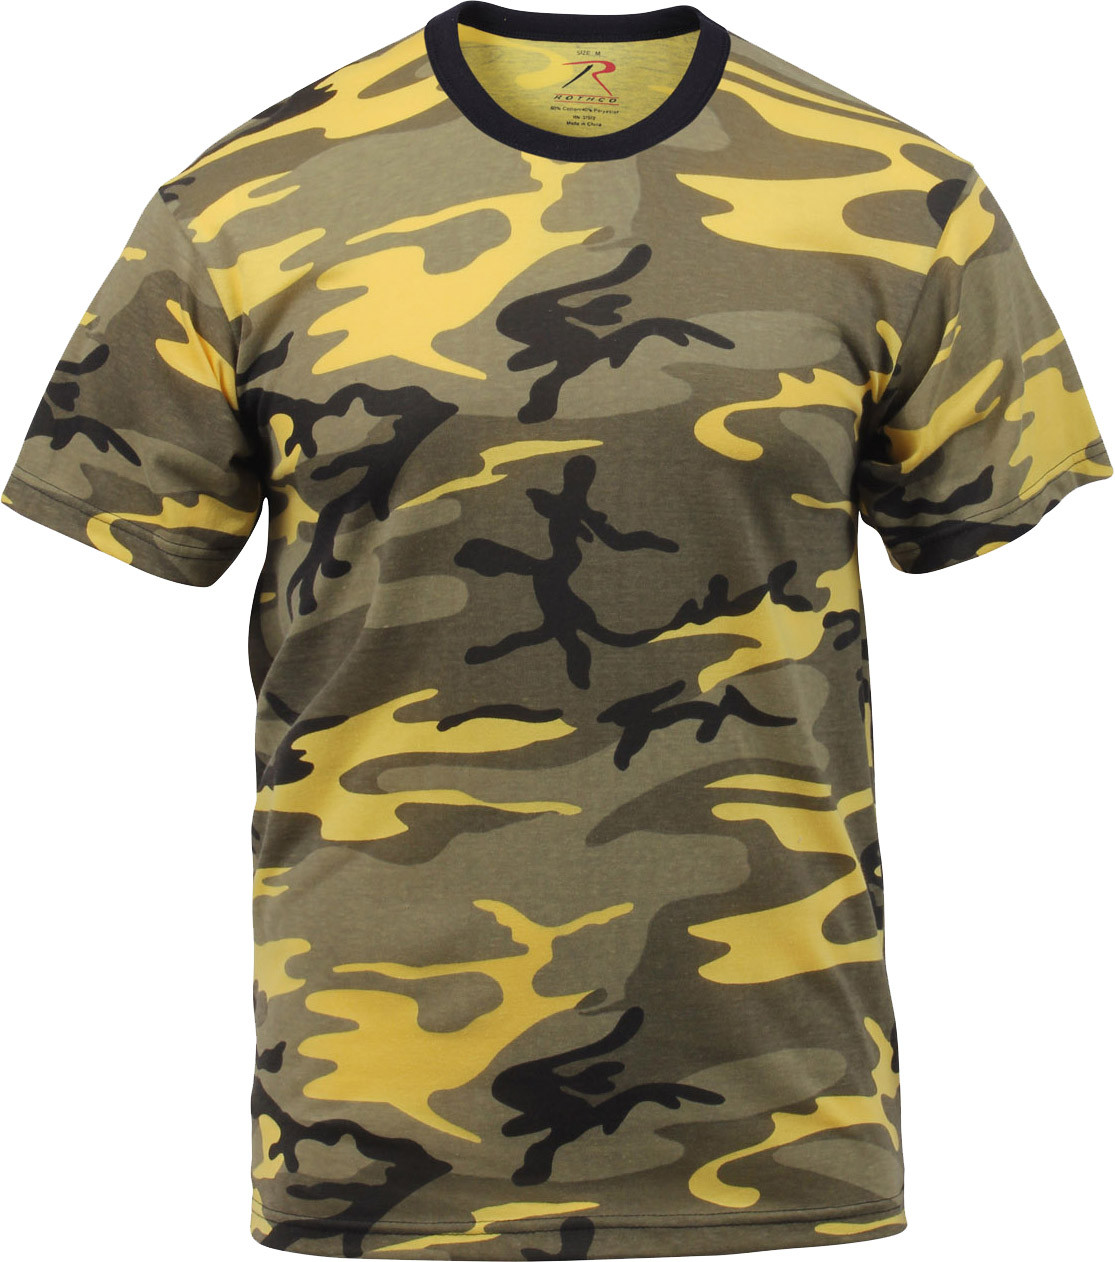 Stinger Yellow Camouflage Military Short Sleeve T-Shirt 02d6104c841